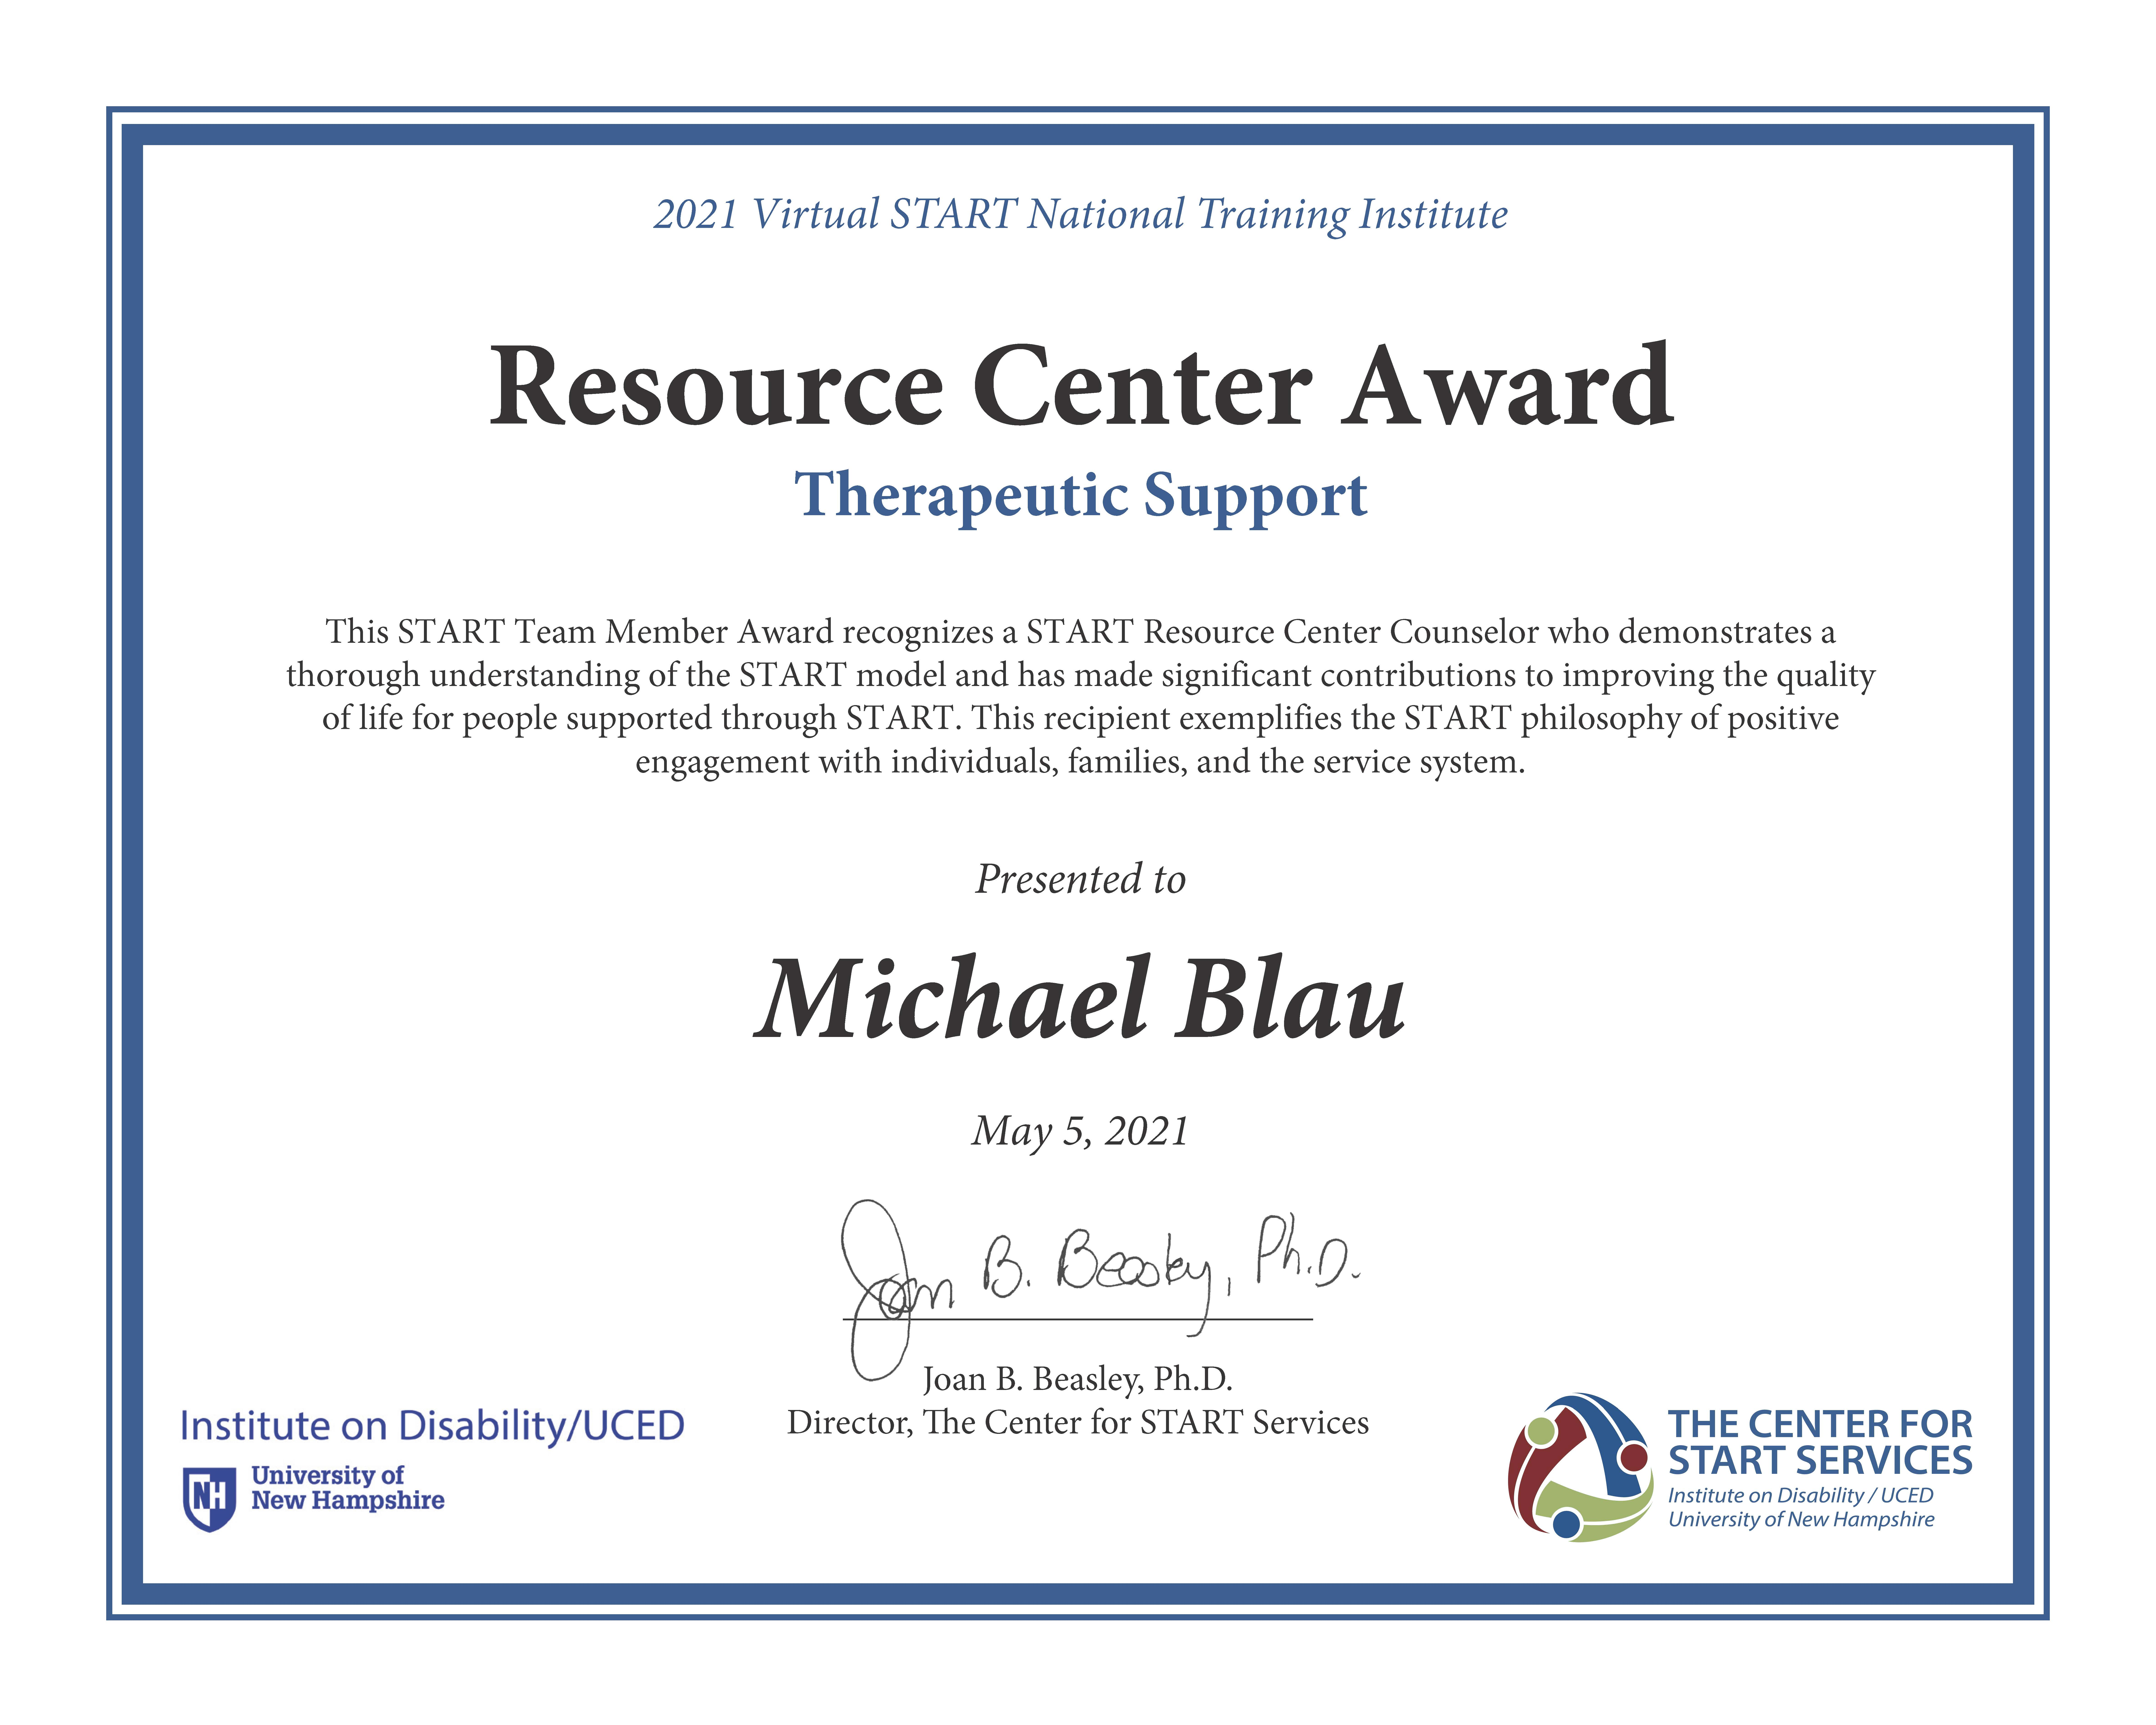 Certificate reads: 2021 Virtual START National Training Institute Resource Center Award Therapeutic Support This START Team Member Award recognizes a START Resource Center Counselor who demonstrates a thorough understanding of the START model and has made significant contributions to improving the quality of life for people supported through START. This recipient exemplifies the START philosophy of positive engagement with individuals, families, and the service system. Presented to Michael Blau May 5, 2021 Joan B. Beasley, Ph.D. Director, The Center for START Services. Logo for the institude on disability in lower left corner. Logo for START services in lower right corner